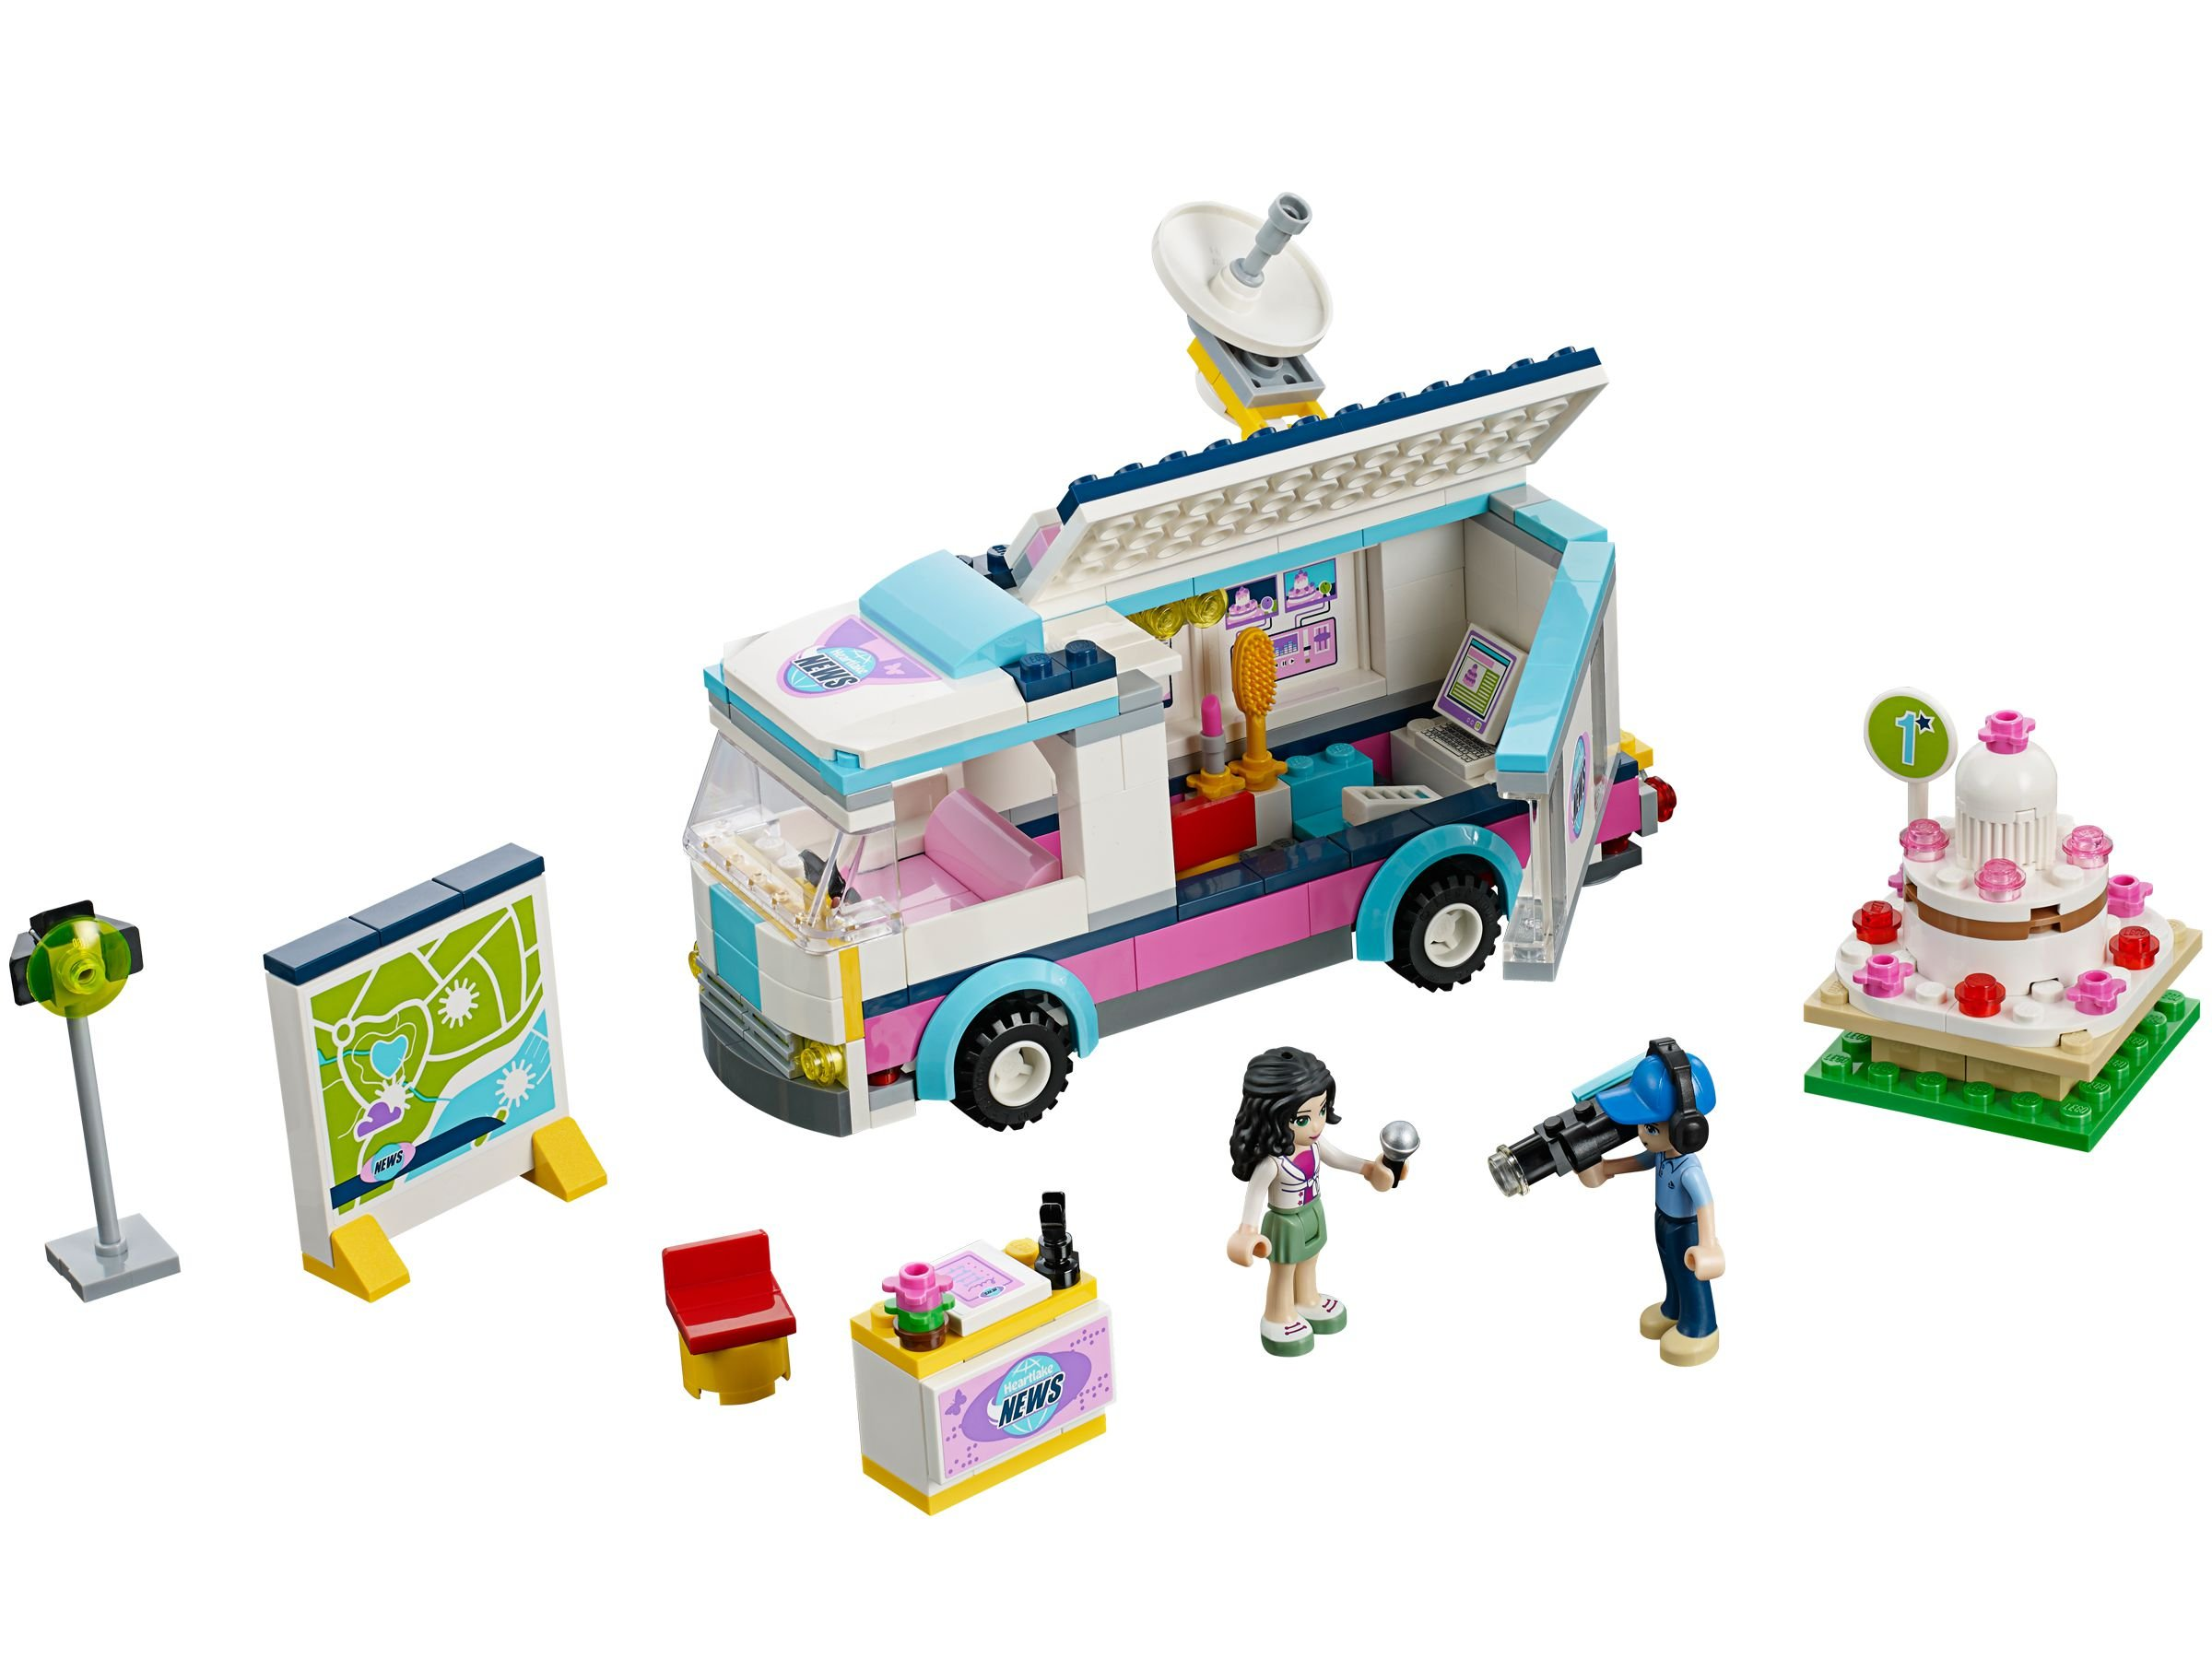 LEGO Friends 41056 Mobile Fernsehstation LEGO_41056.jpg